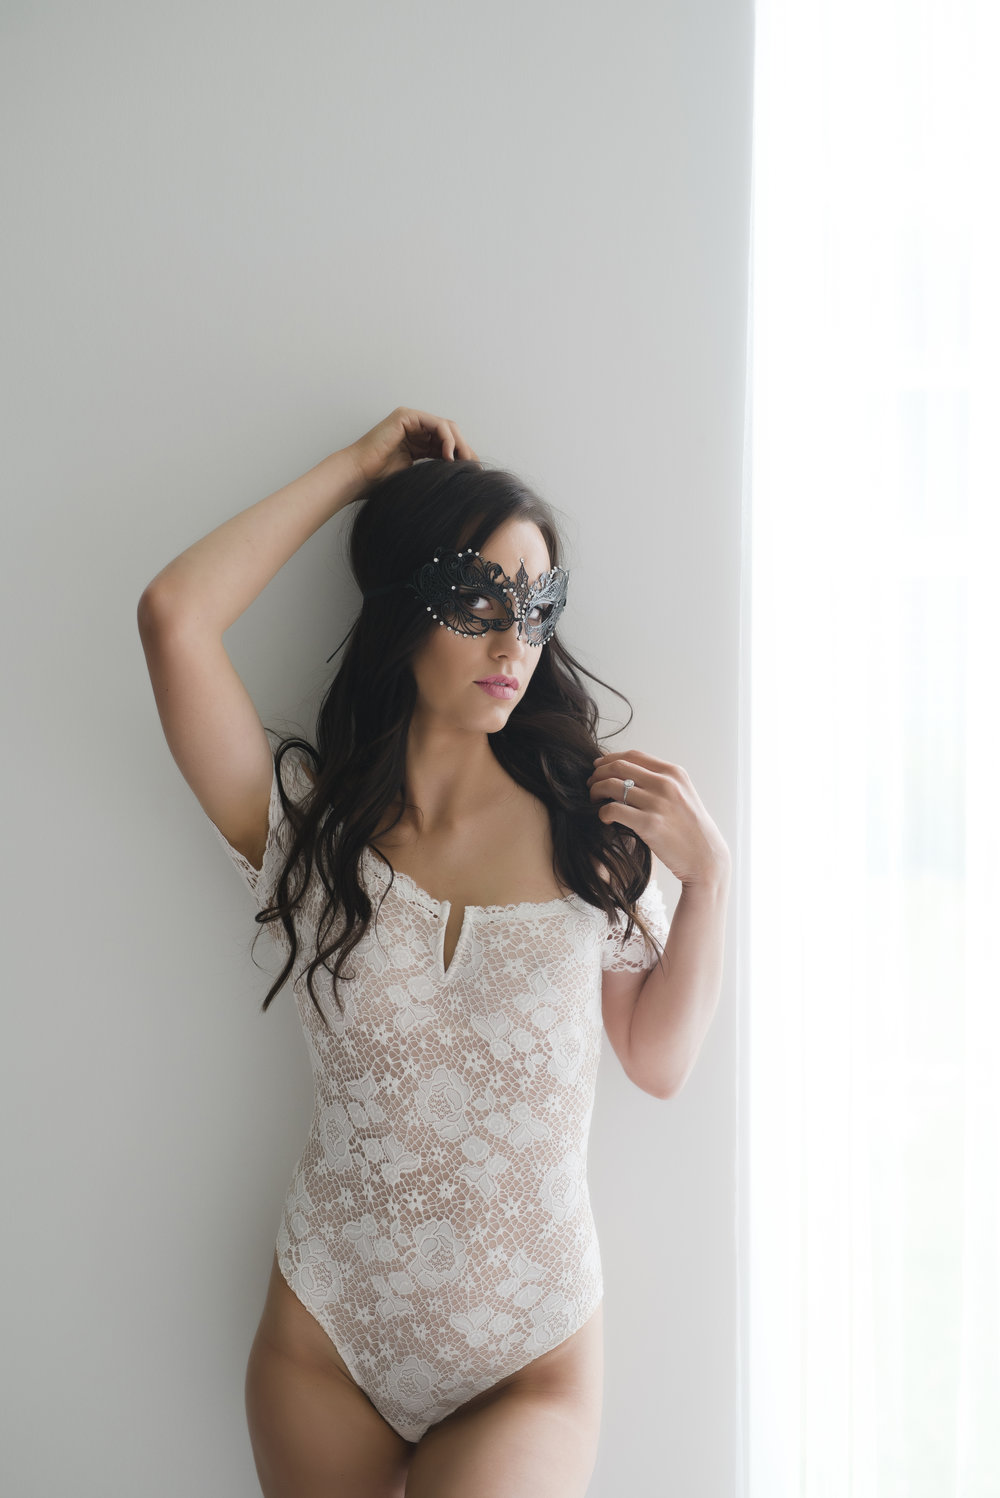 008Amy Cloud Photography Utah Boudoir Photographer.jpg